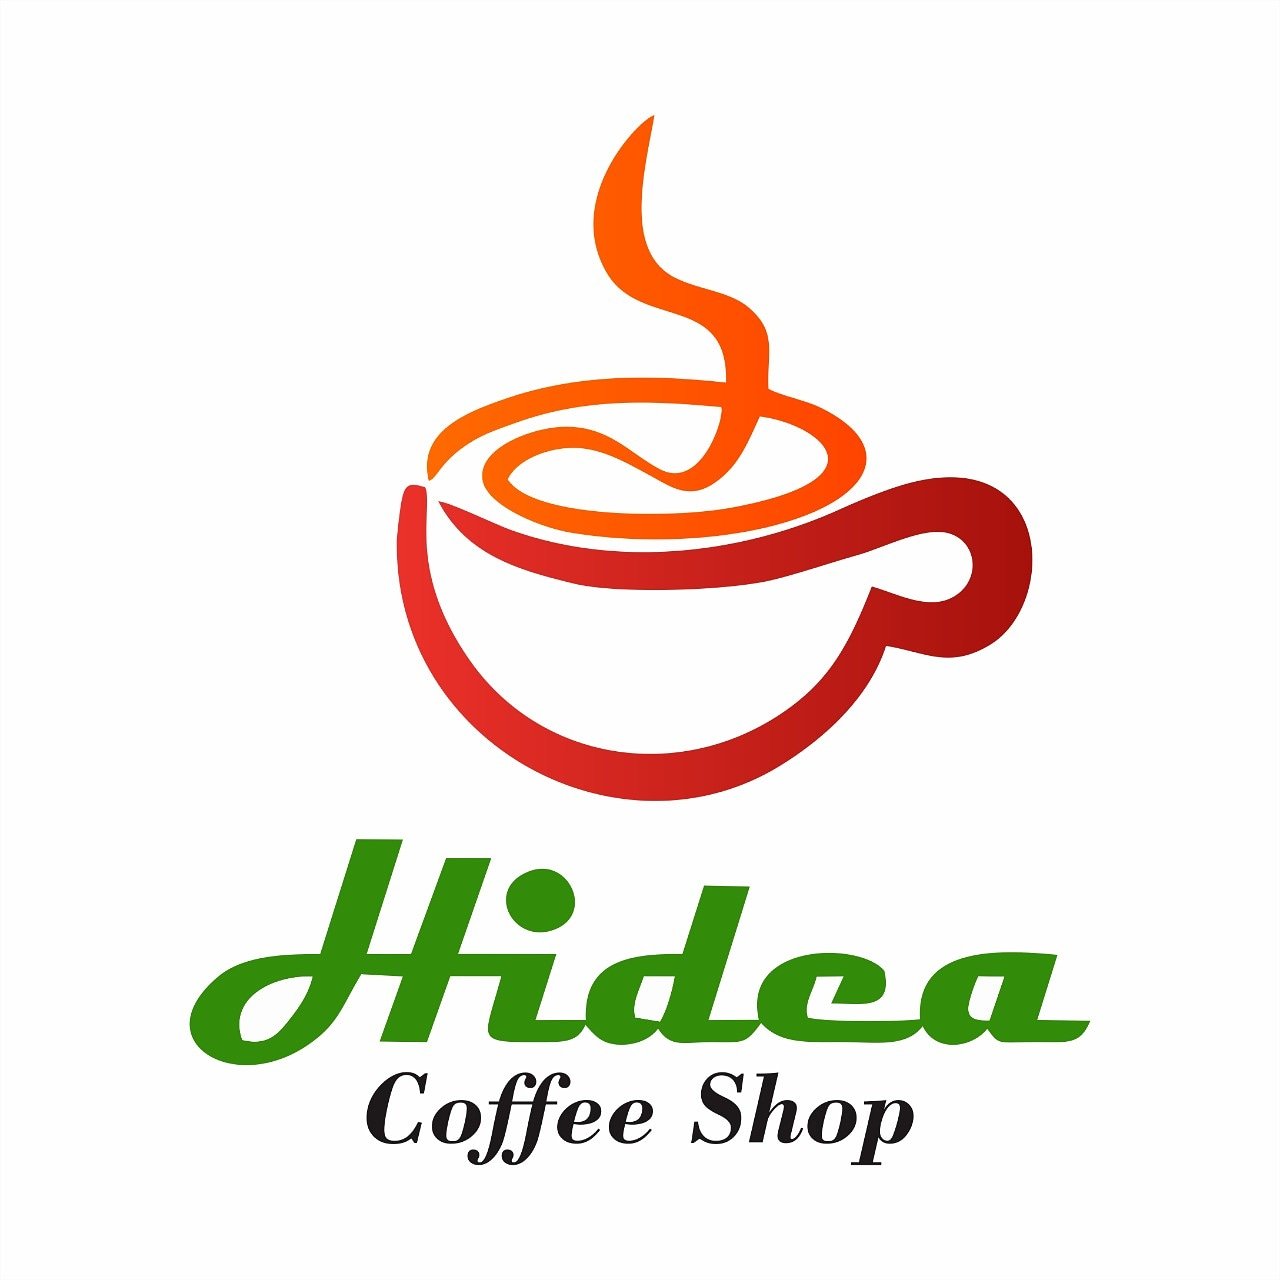 HIDEA COFFEE SHOP